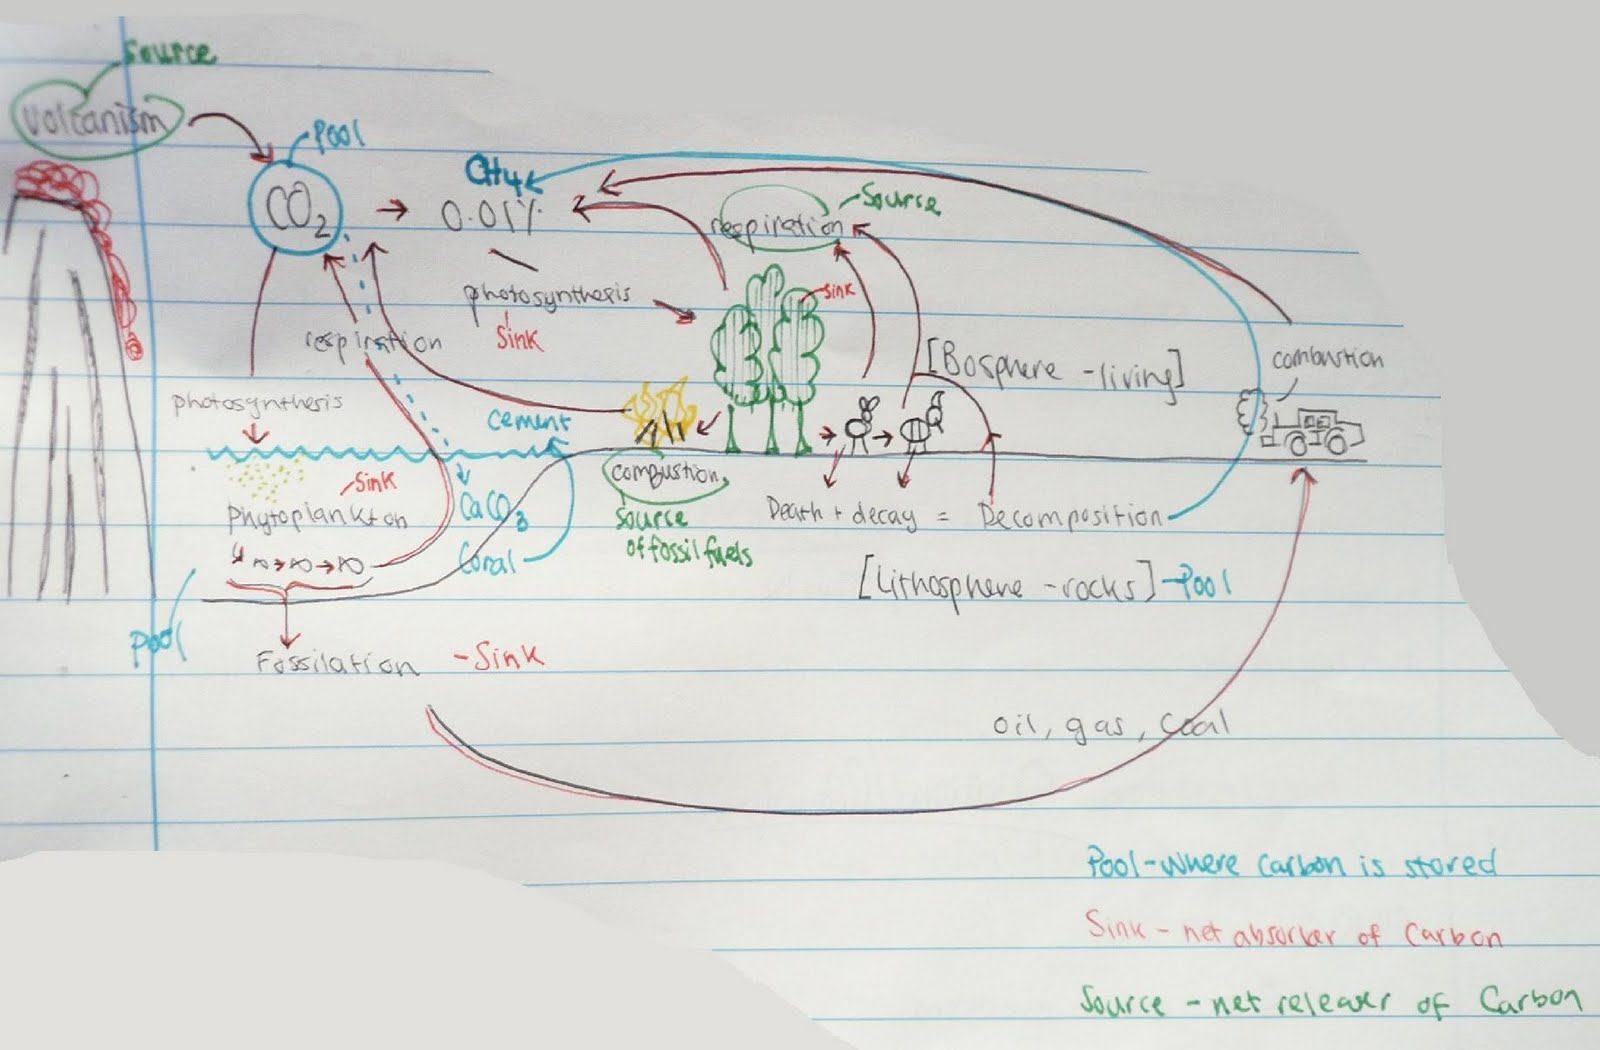 Carbon Cycle Diagram Labeled